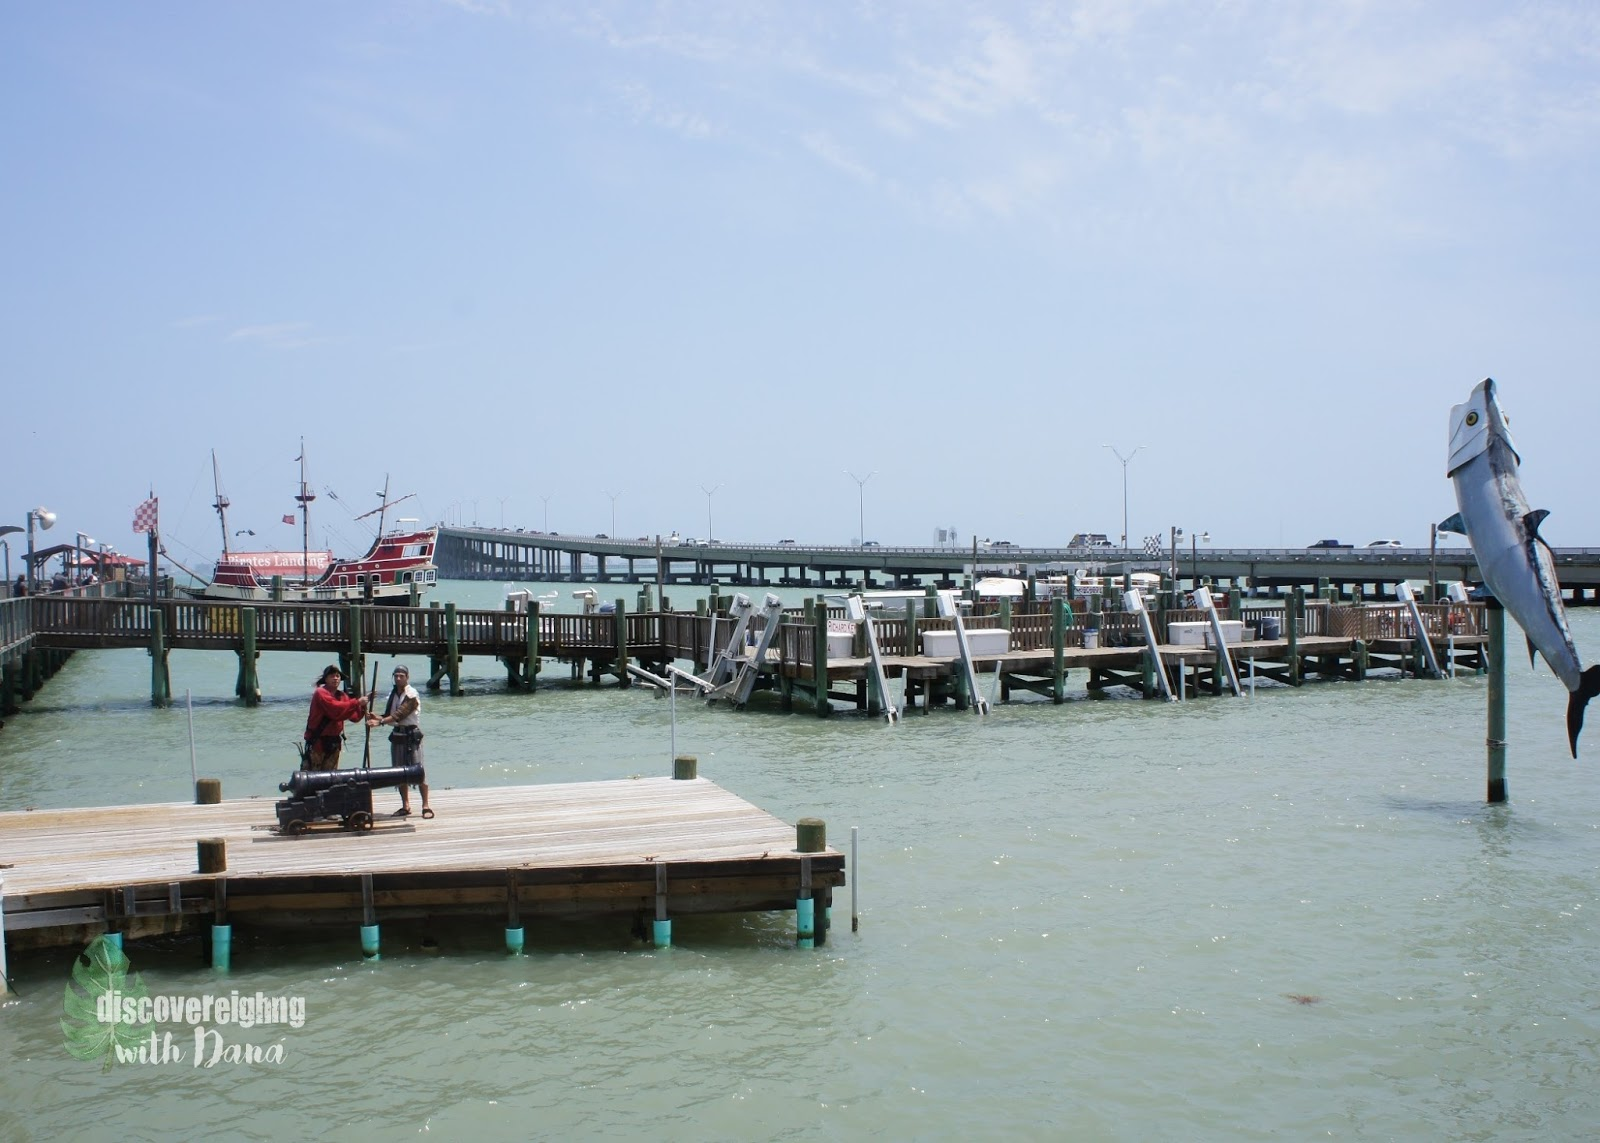 Category: South Padre Island - Discovereighng with Dana Travel